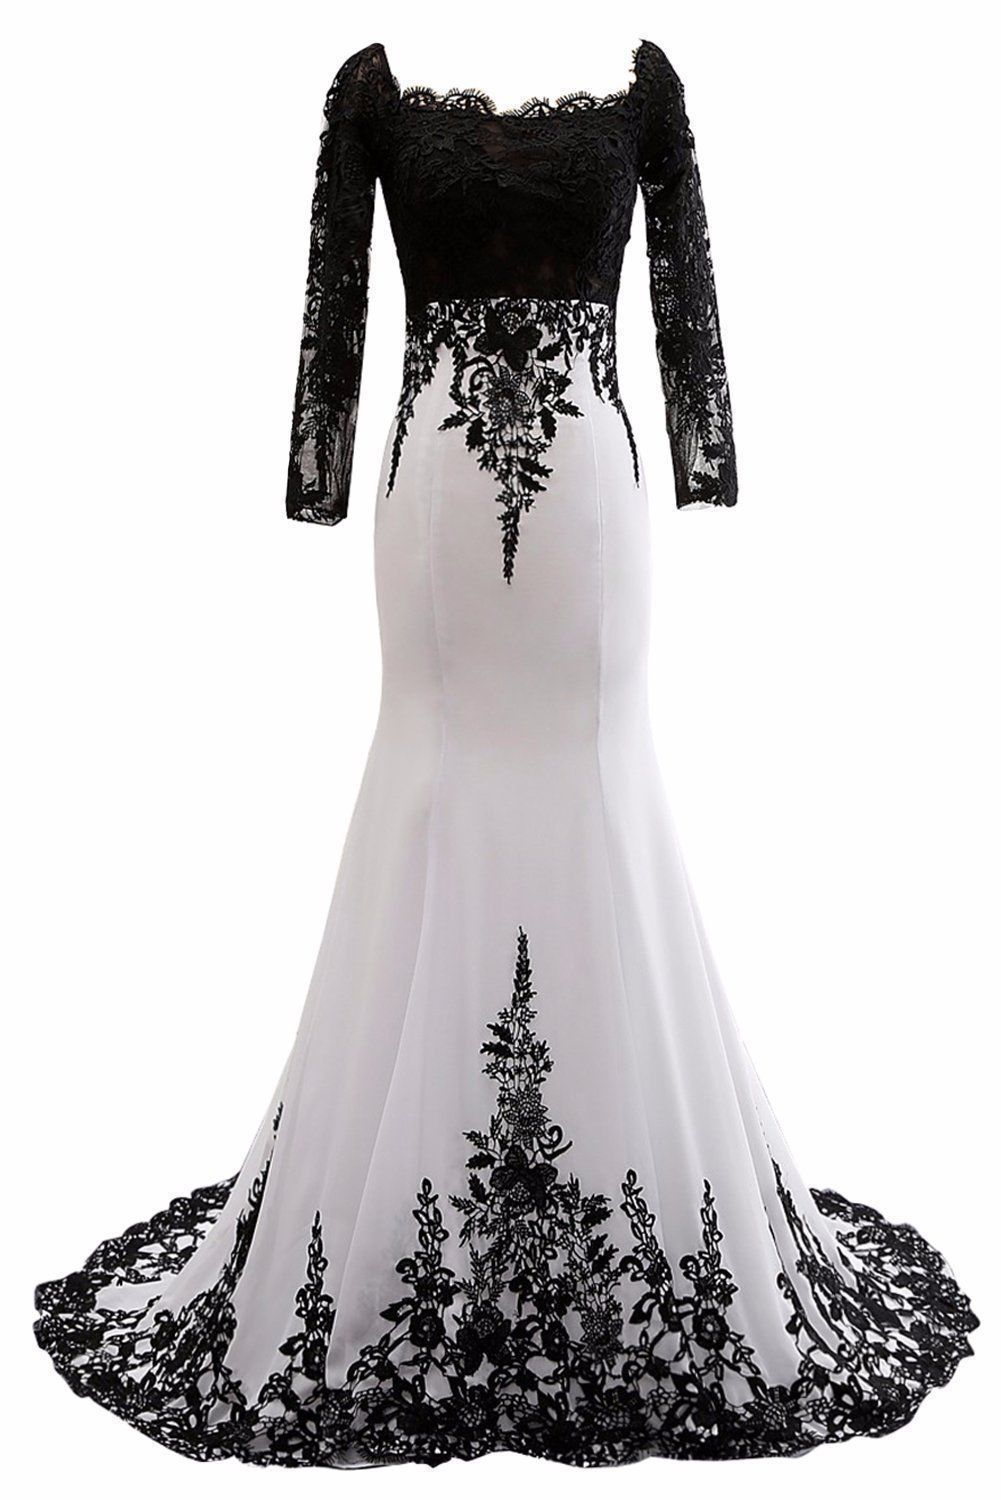 Custom Evening Dresses - Couture Formal Ball Gowns in 2018 | Formal ...